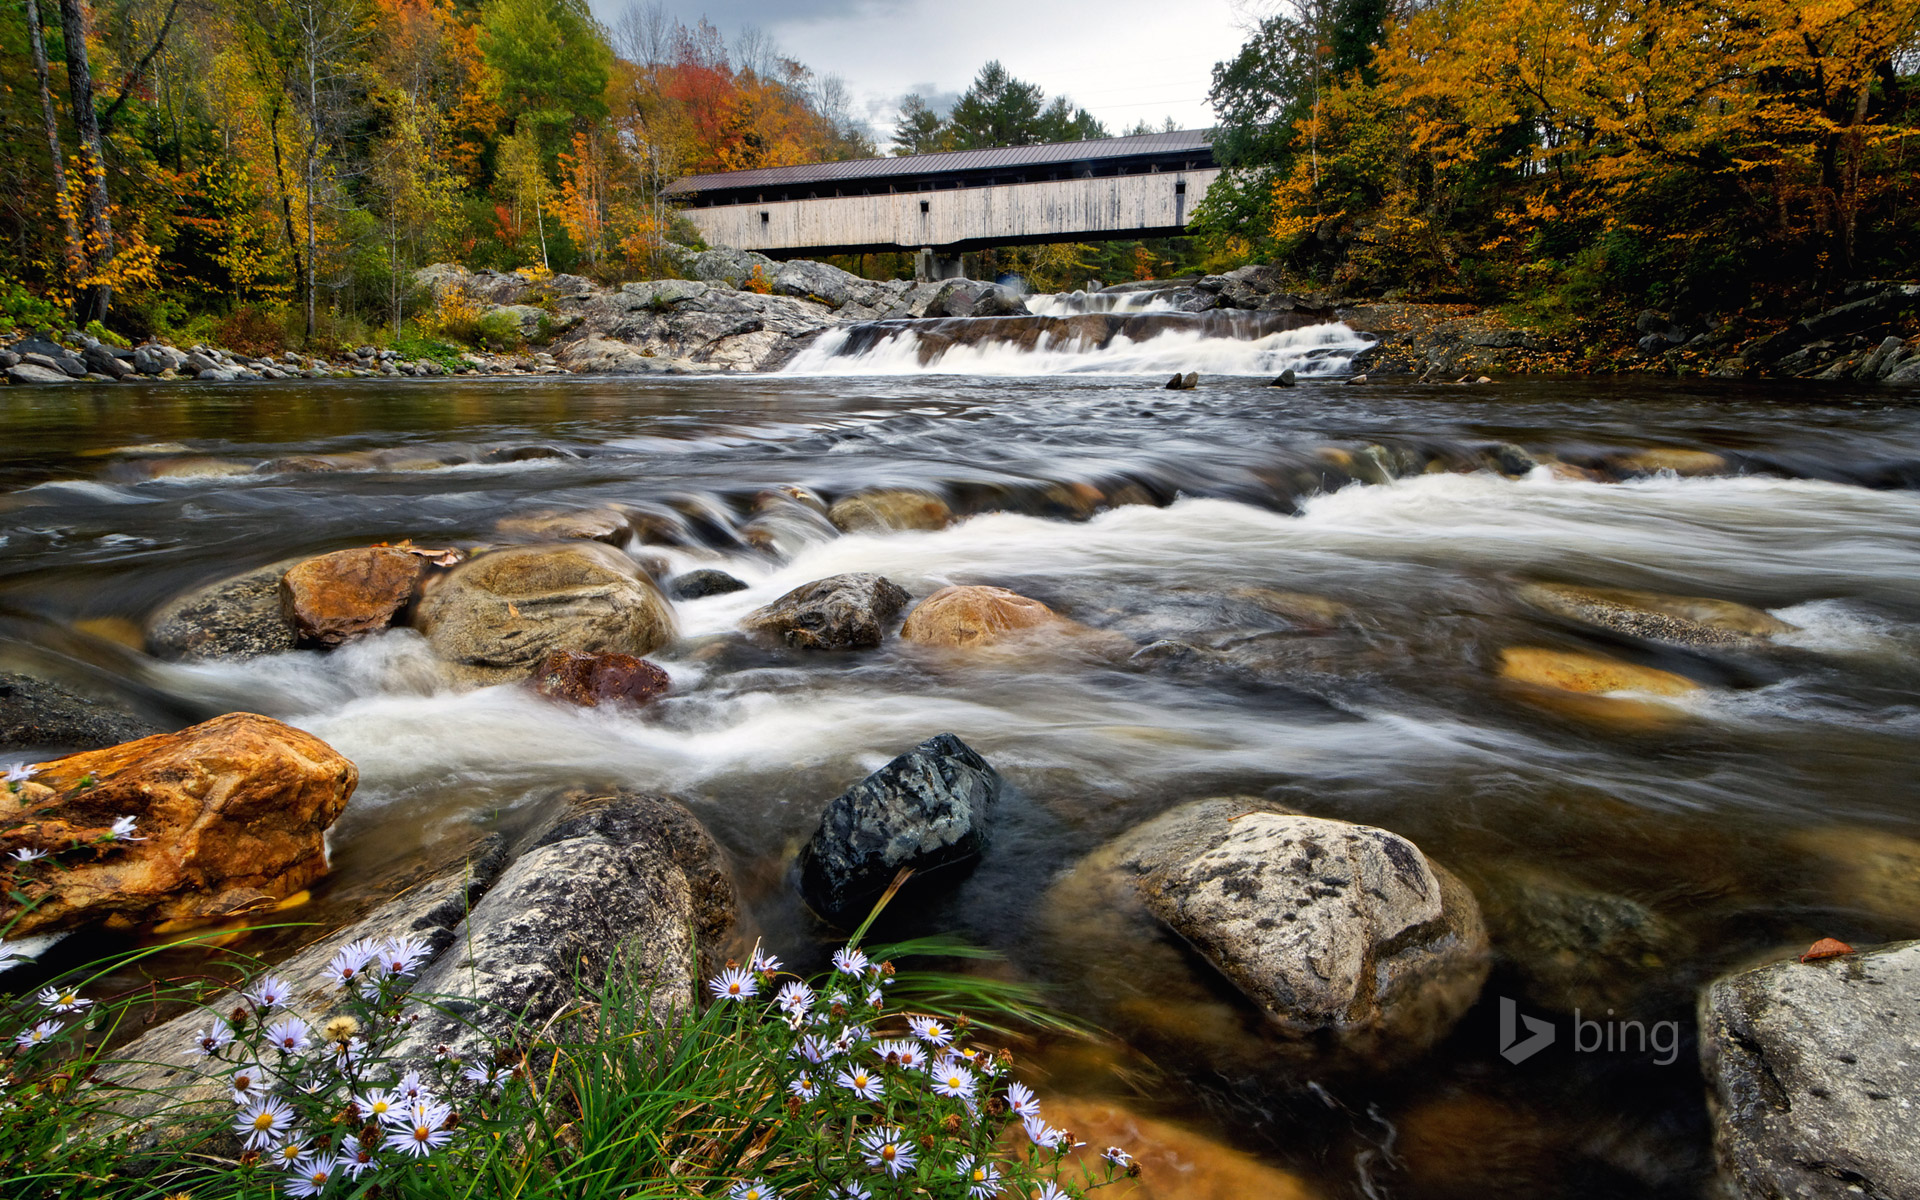 Covered bridge crosses the Wild Ammonoosuc River in Bath, New Hampshire